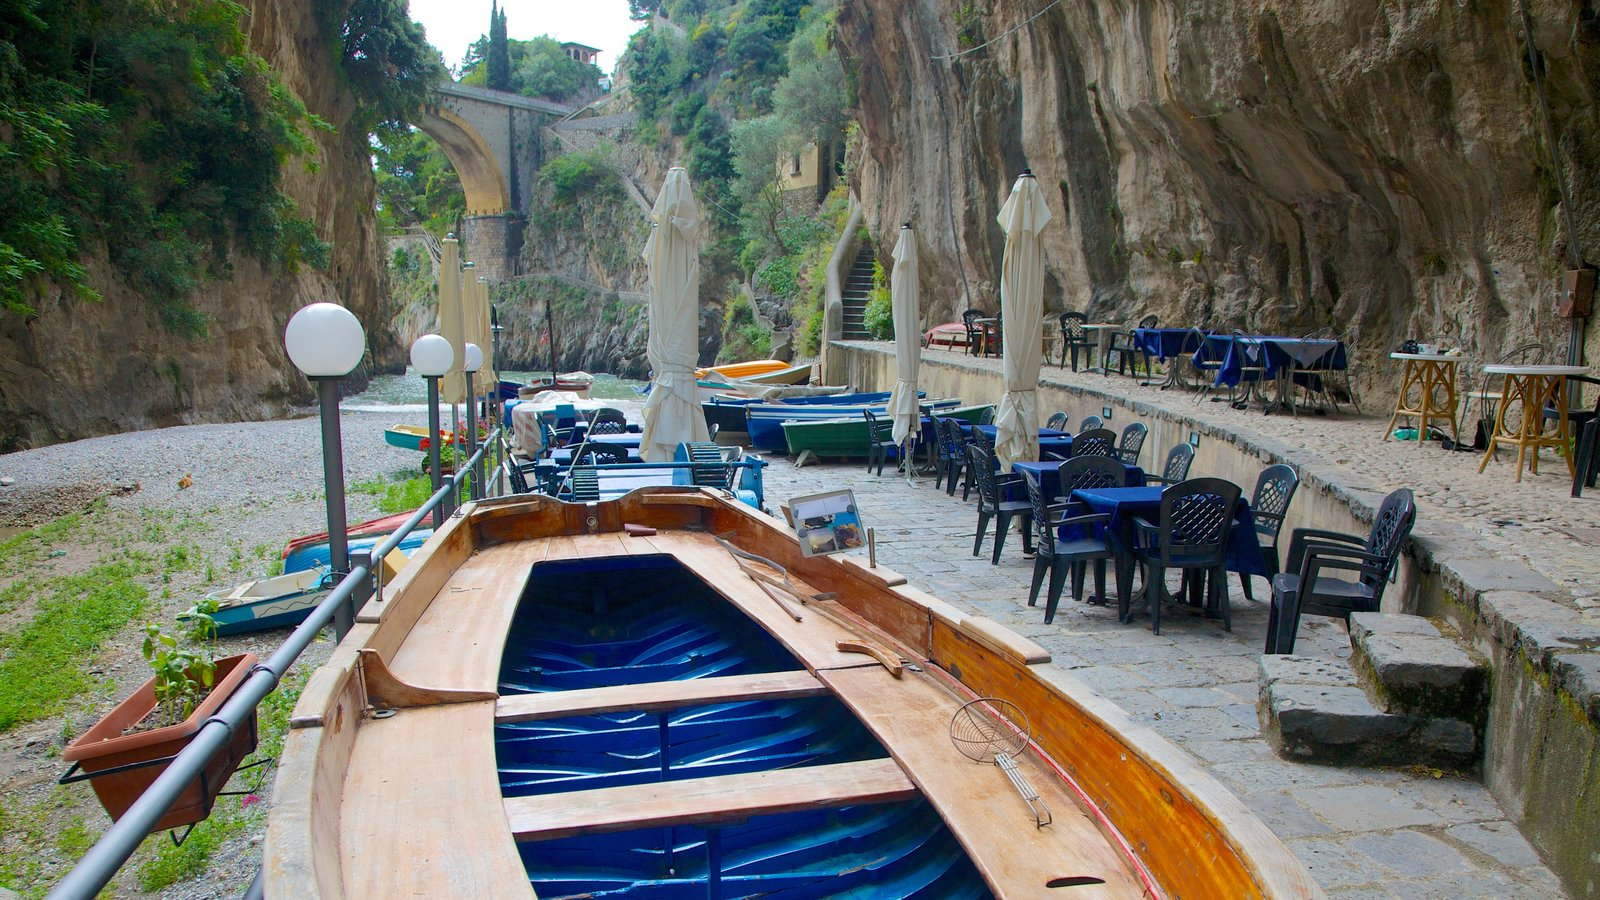 Fiordo di Furore featuring outdoor eating and boating